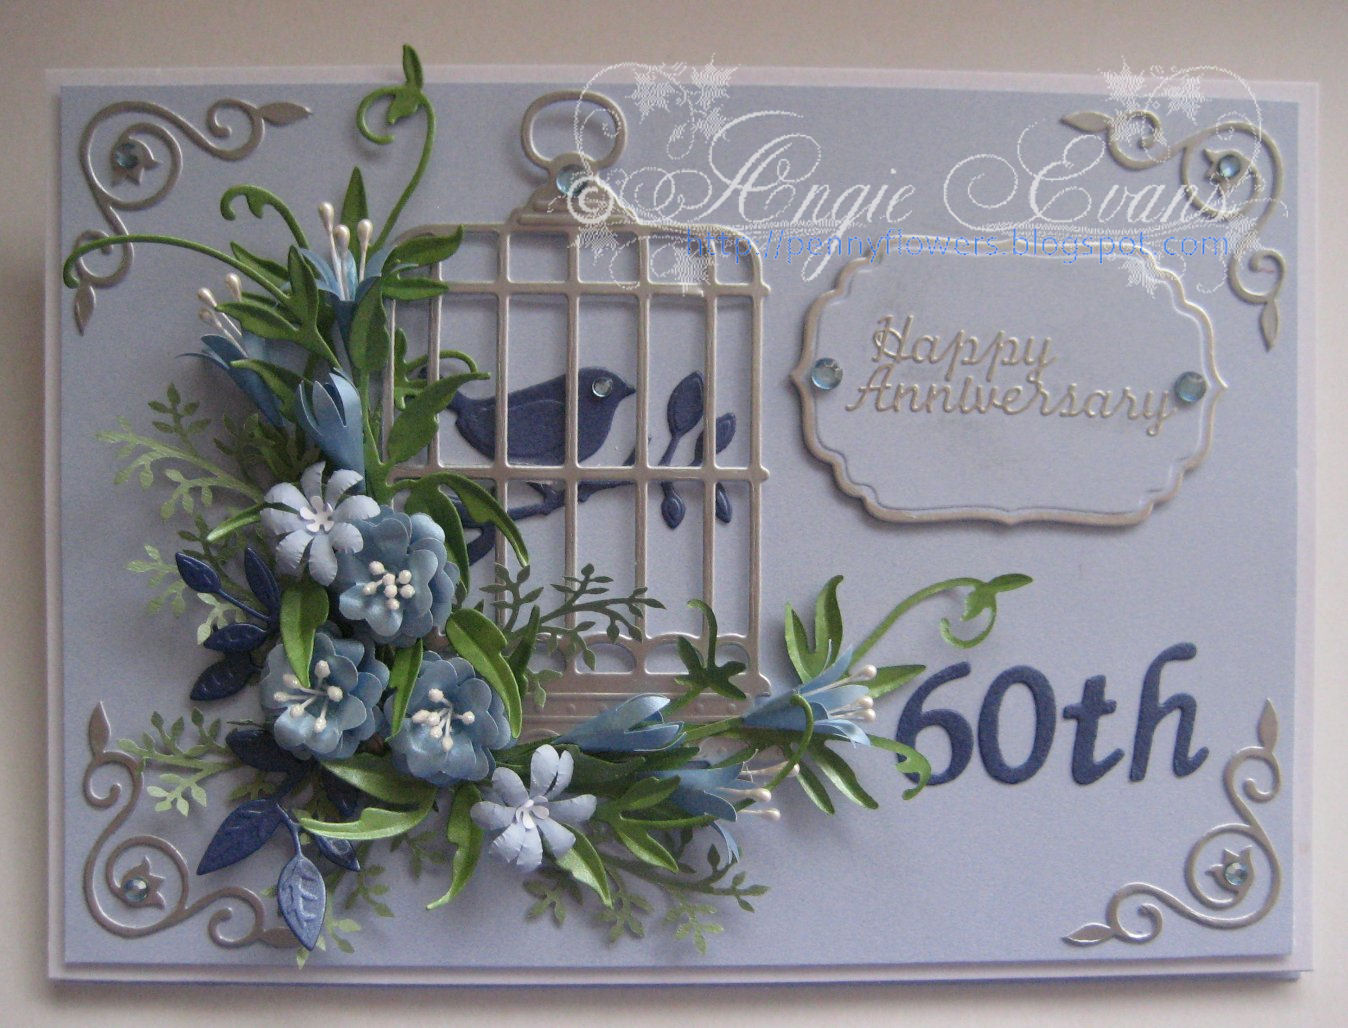 60th wedding anniversary card making ideas